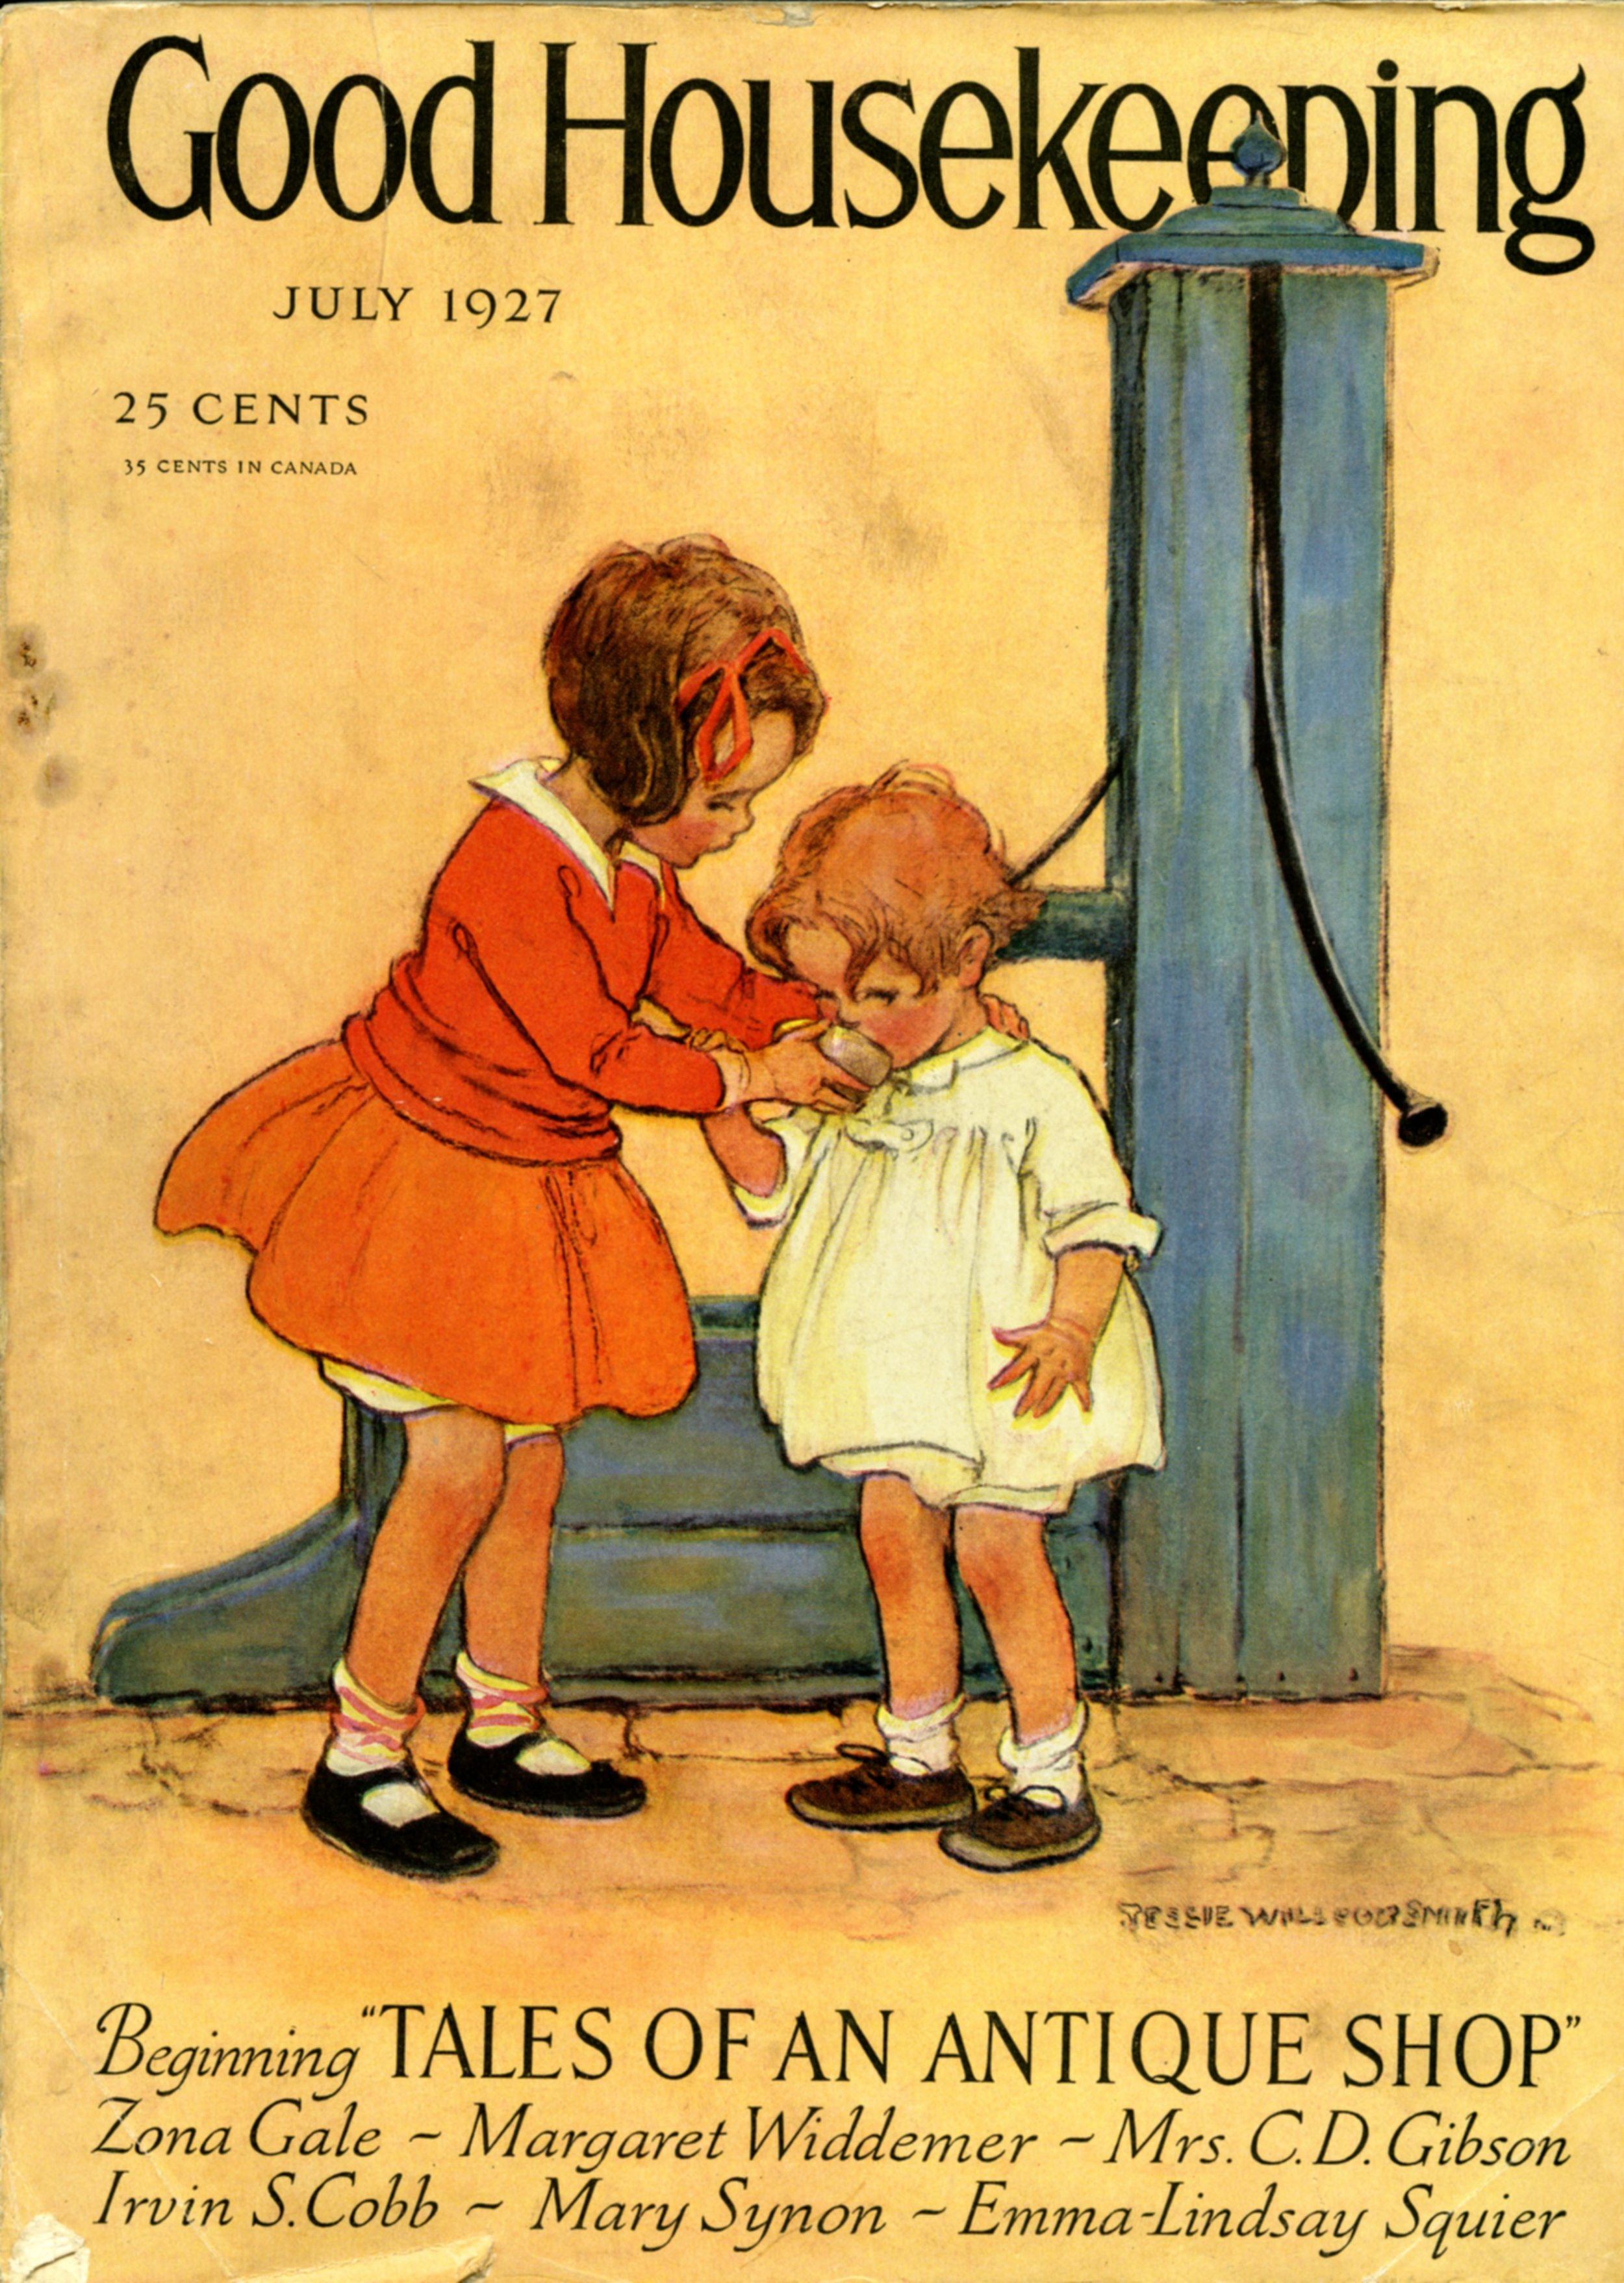 Jessie Wilcox Smith, cover for  Good Housekeeping Magazine.  July 1927.